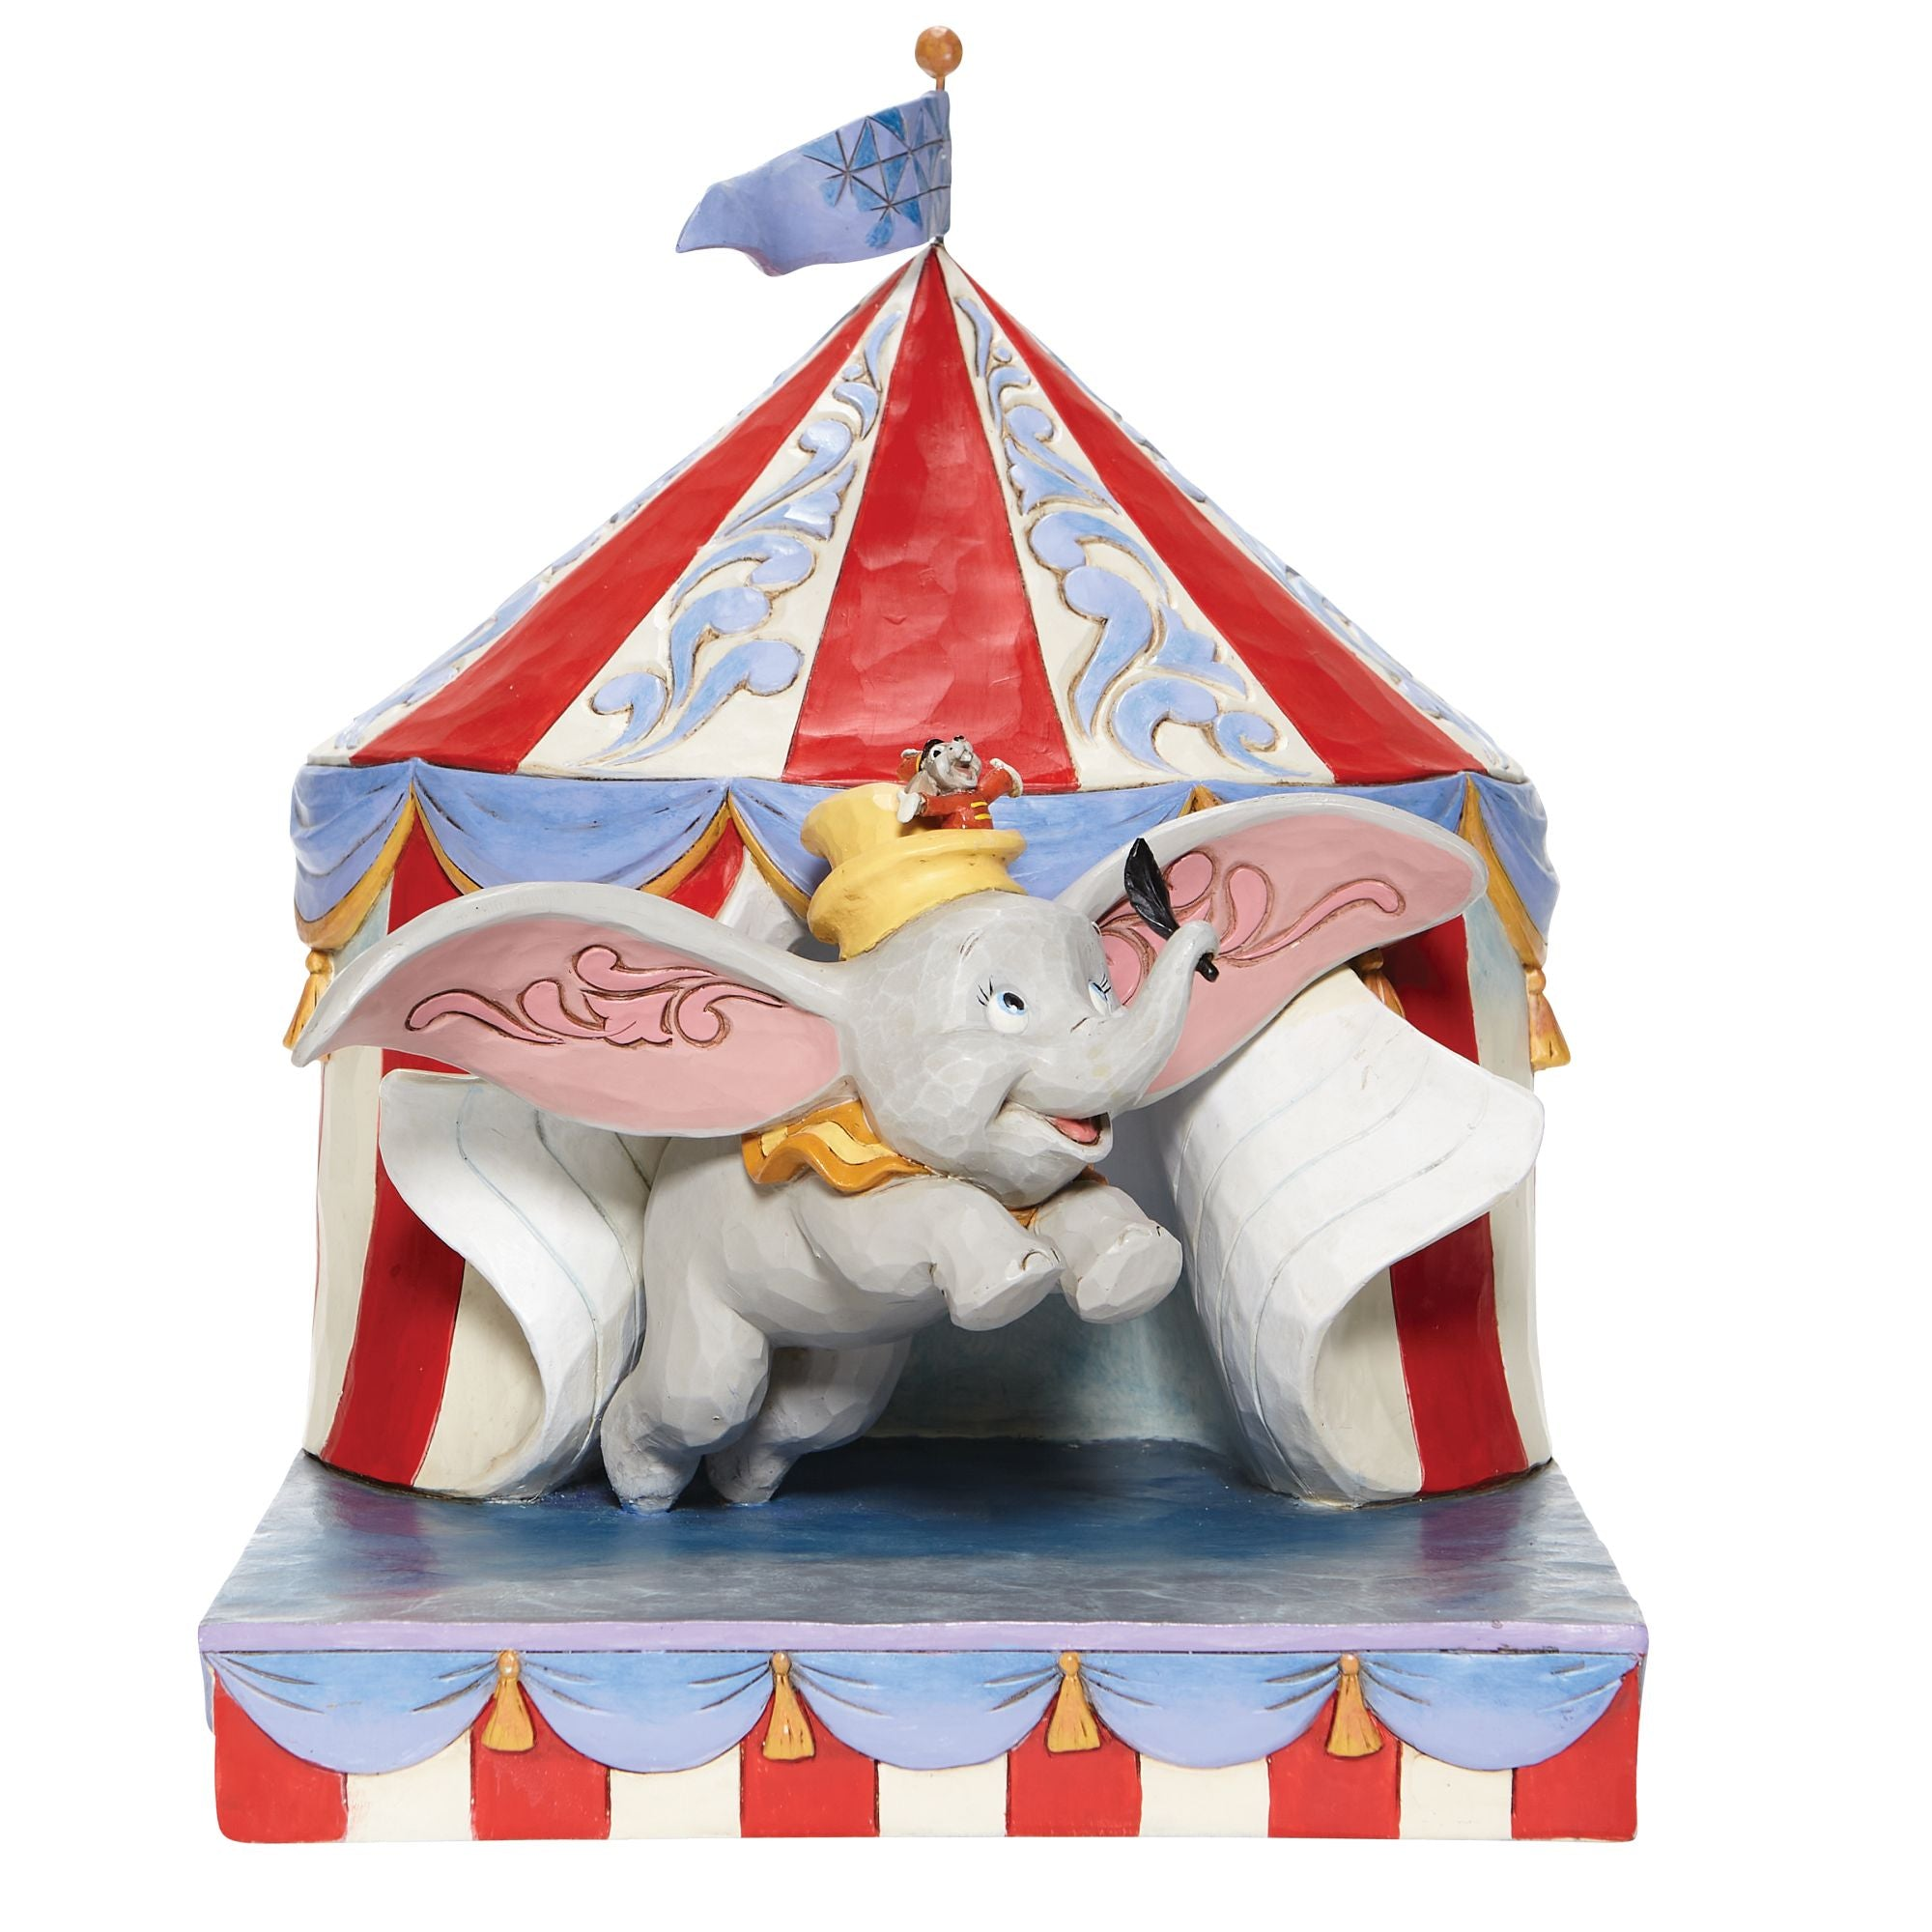 Dumbo Flying out of Tent Scene